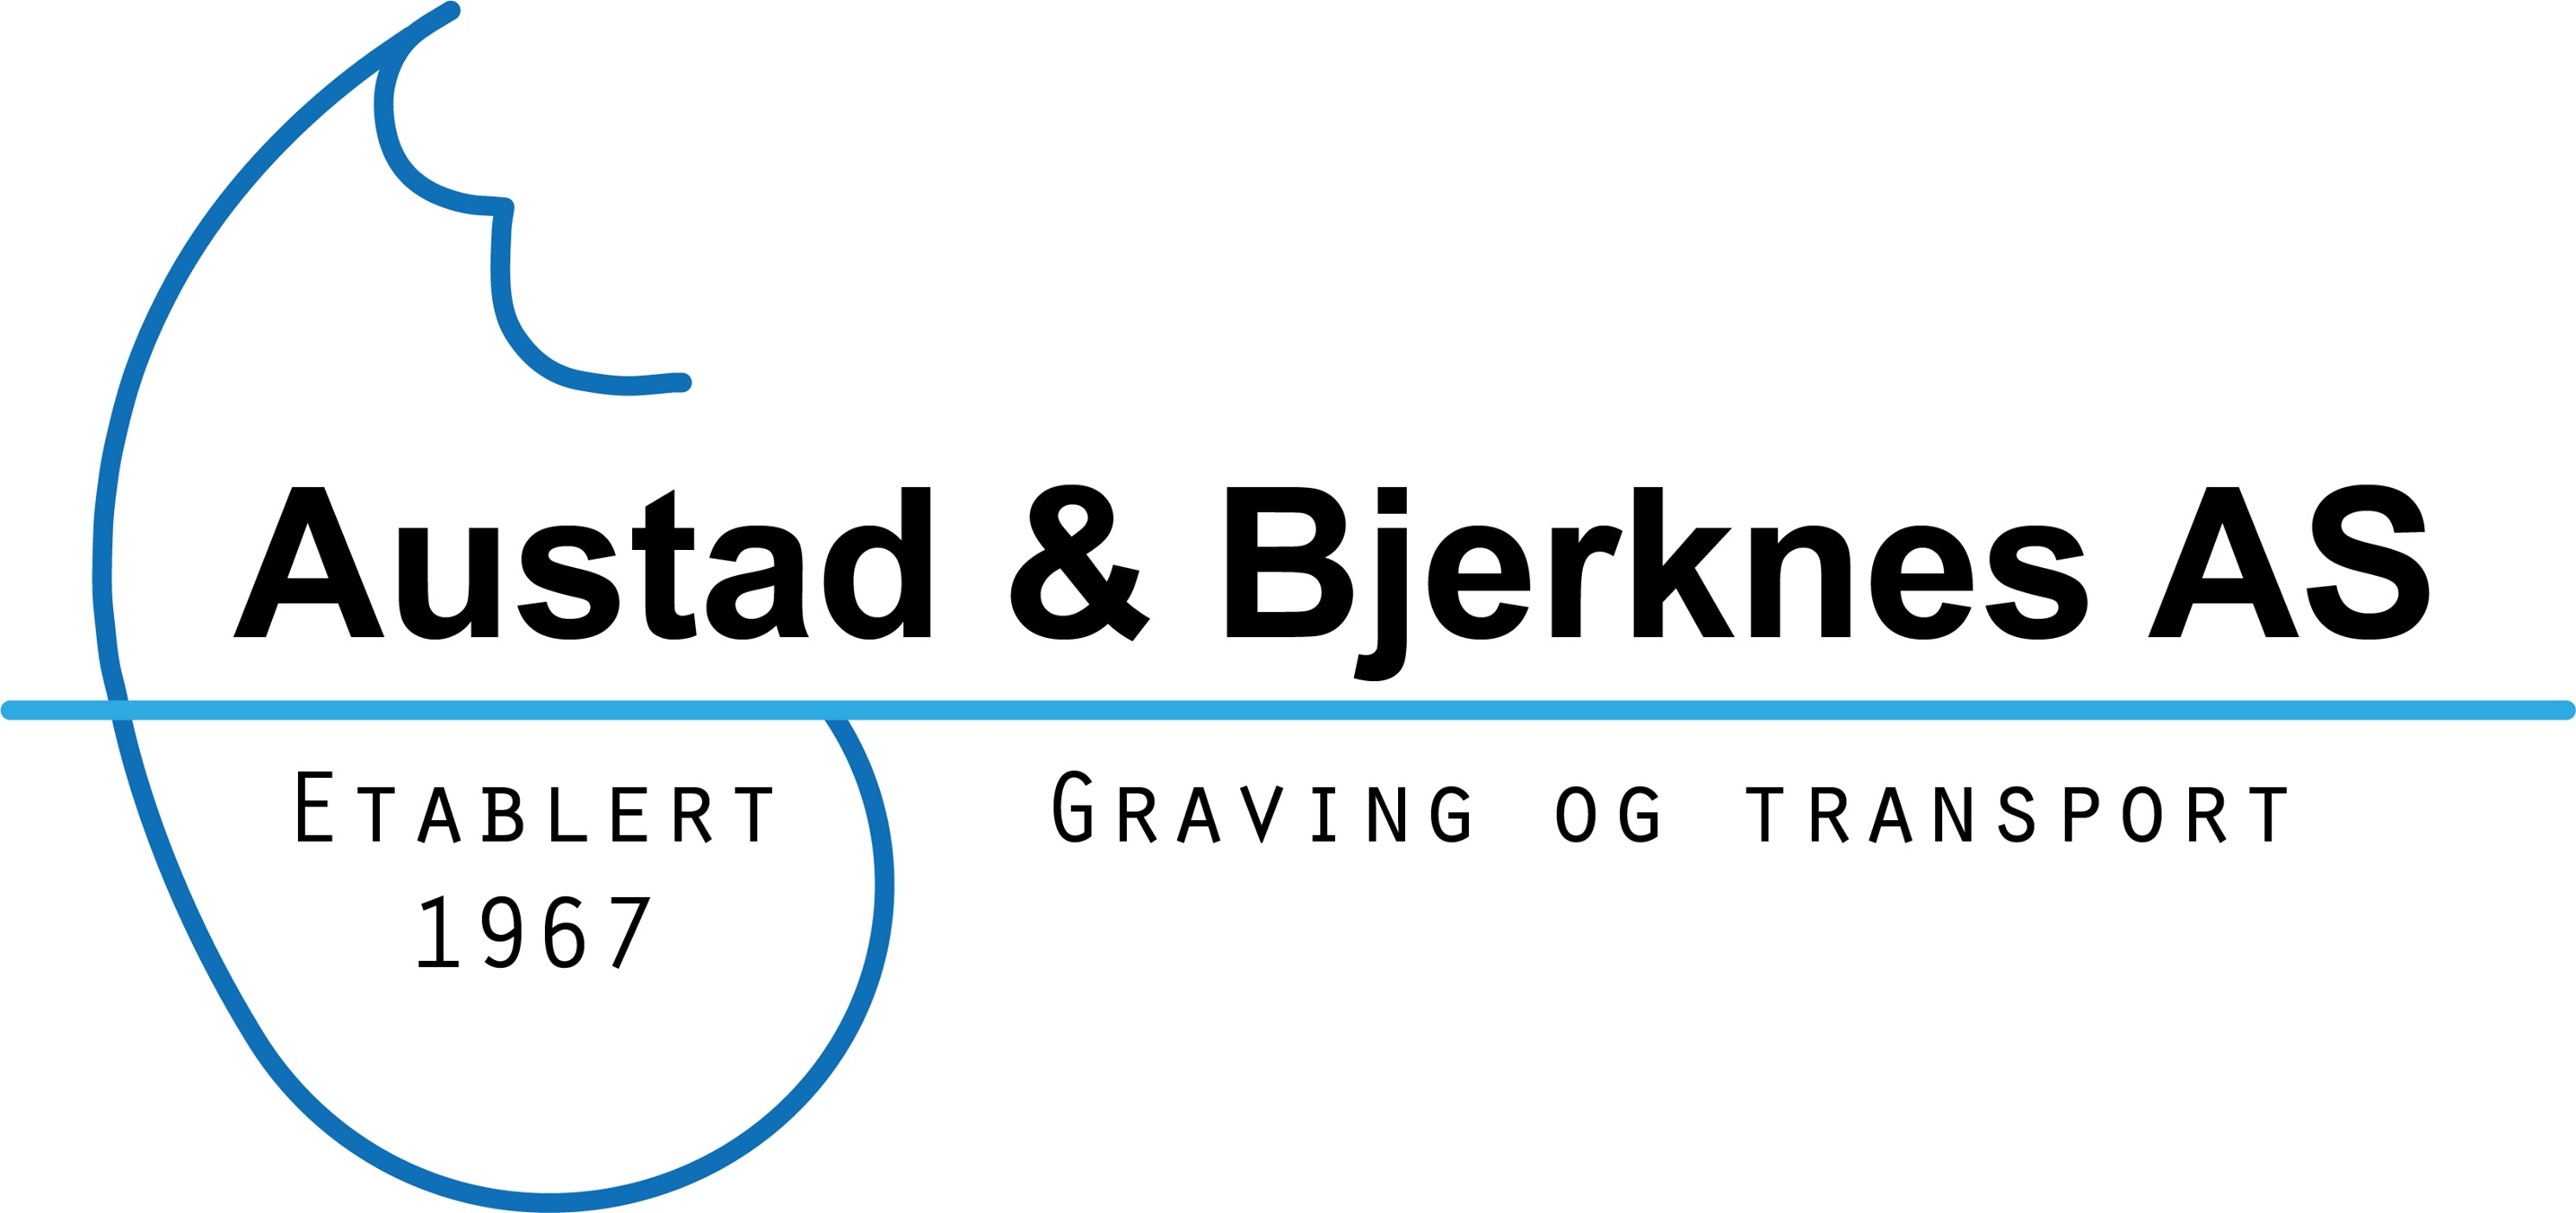 Austad & Bjerknes AS